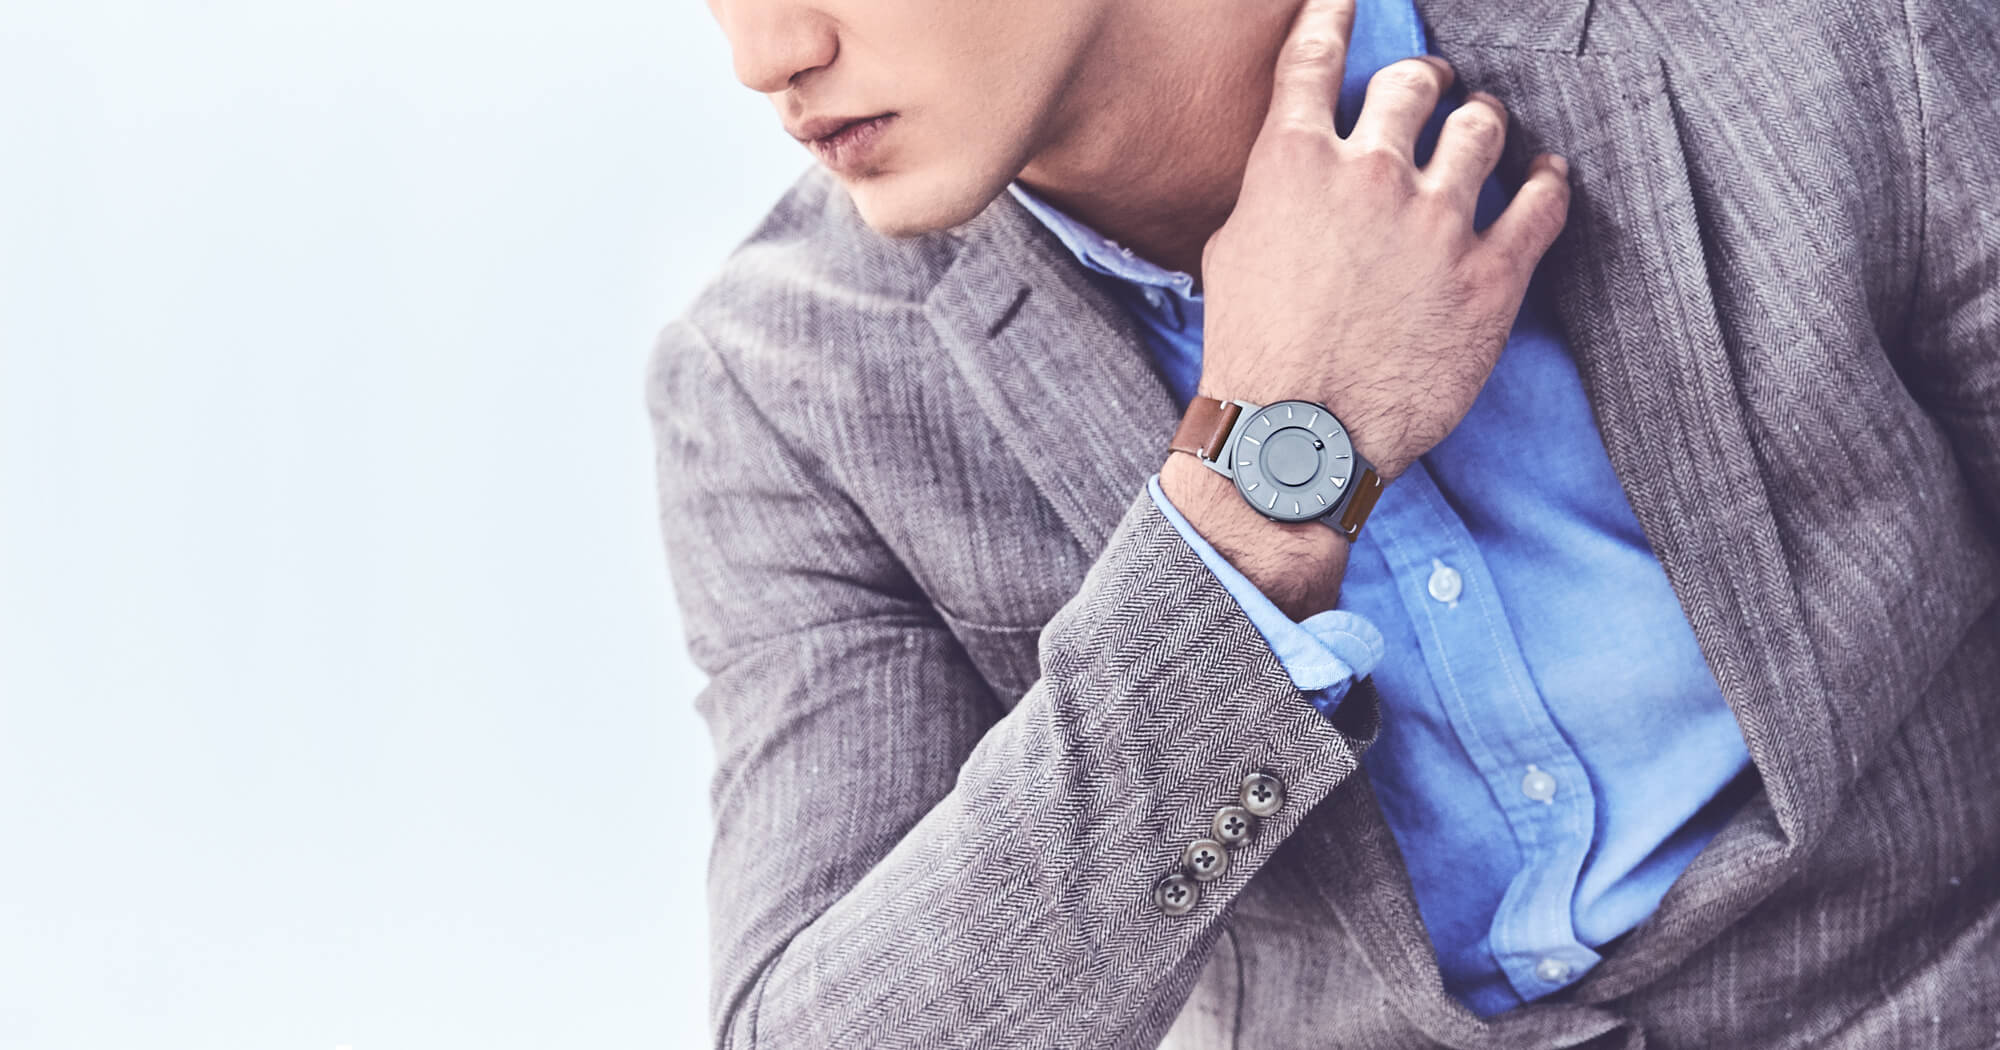 Created by US design company Eone, the Bradley watch is a revolutionary tactile timepiece designed for everyone to wear. It requires neither sound nor vision.